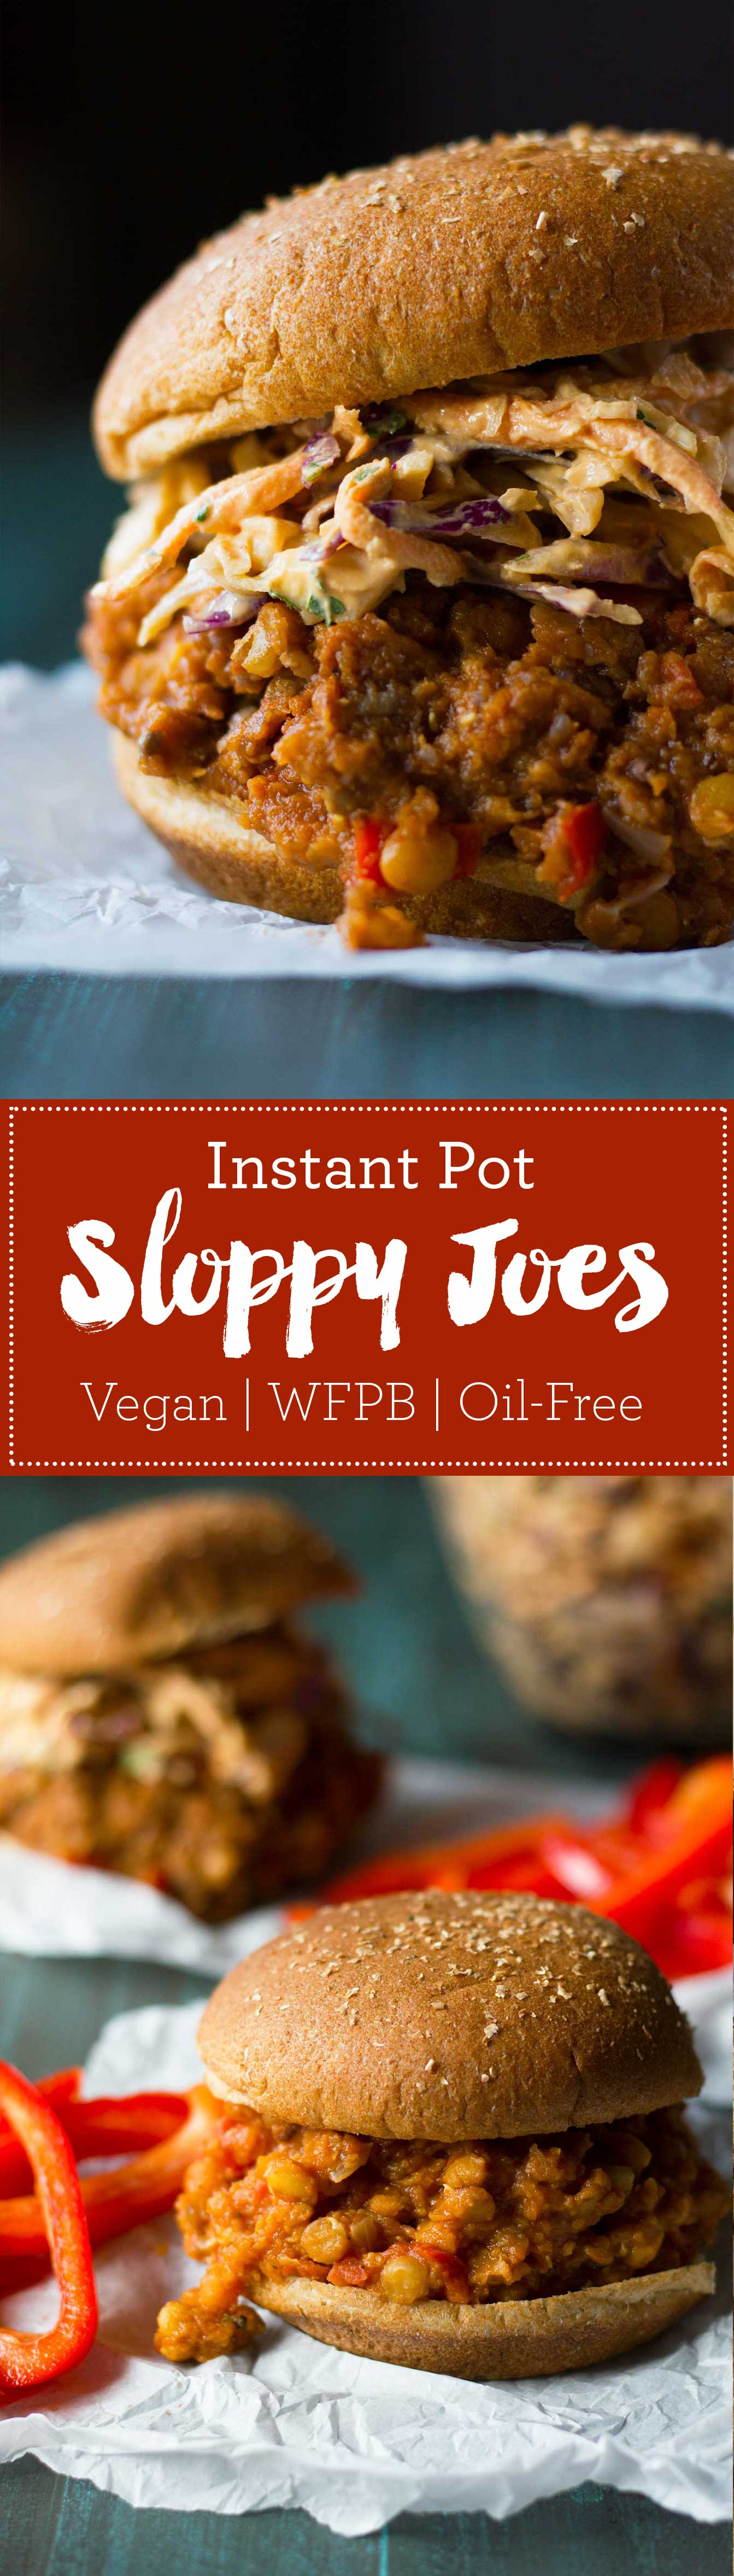 Instant Pot Vegan Sloppy Joes | Recipe | Plant-based | Oil-free | Vegan | https://passtheplants.com/